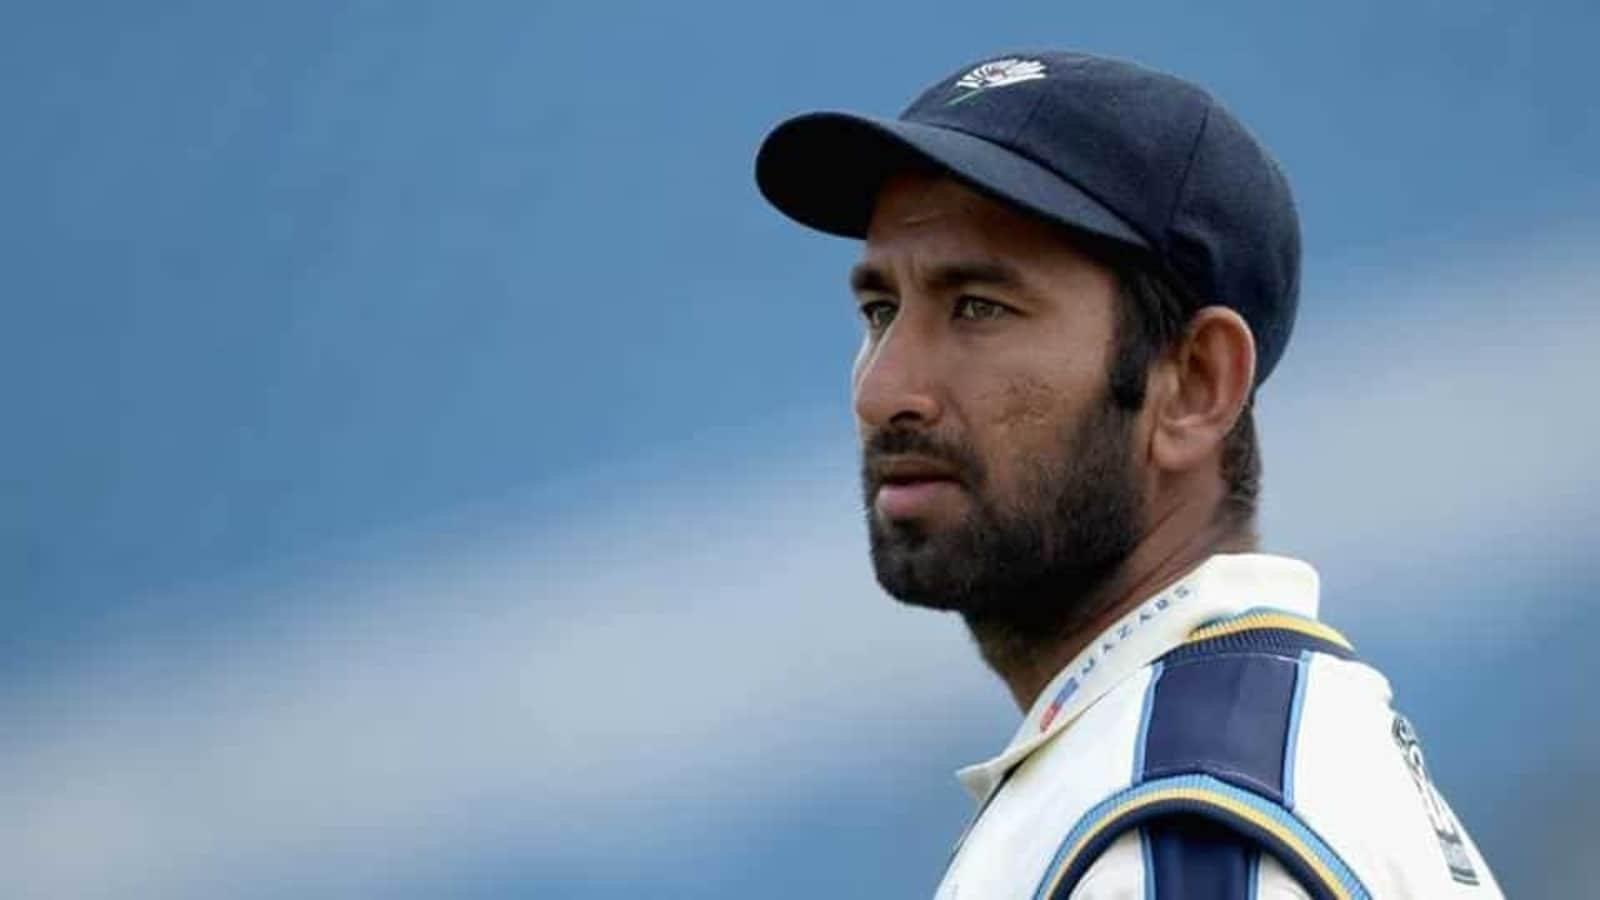 'I feel for him': Cheteshwar Pujara believes Indian batsman 'should also be part of the IPL' - Hindustan Times